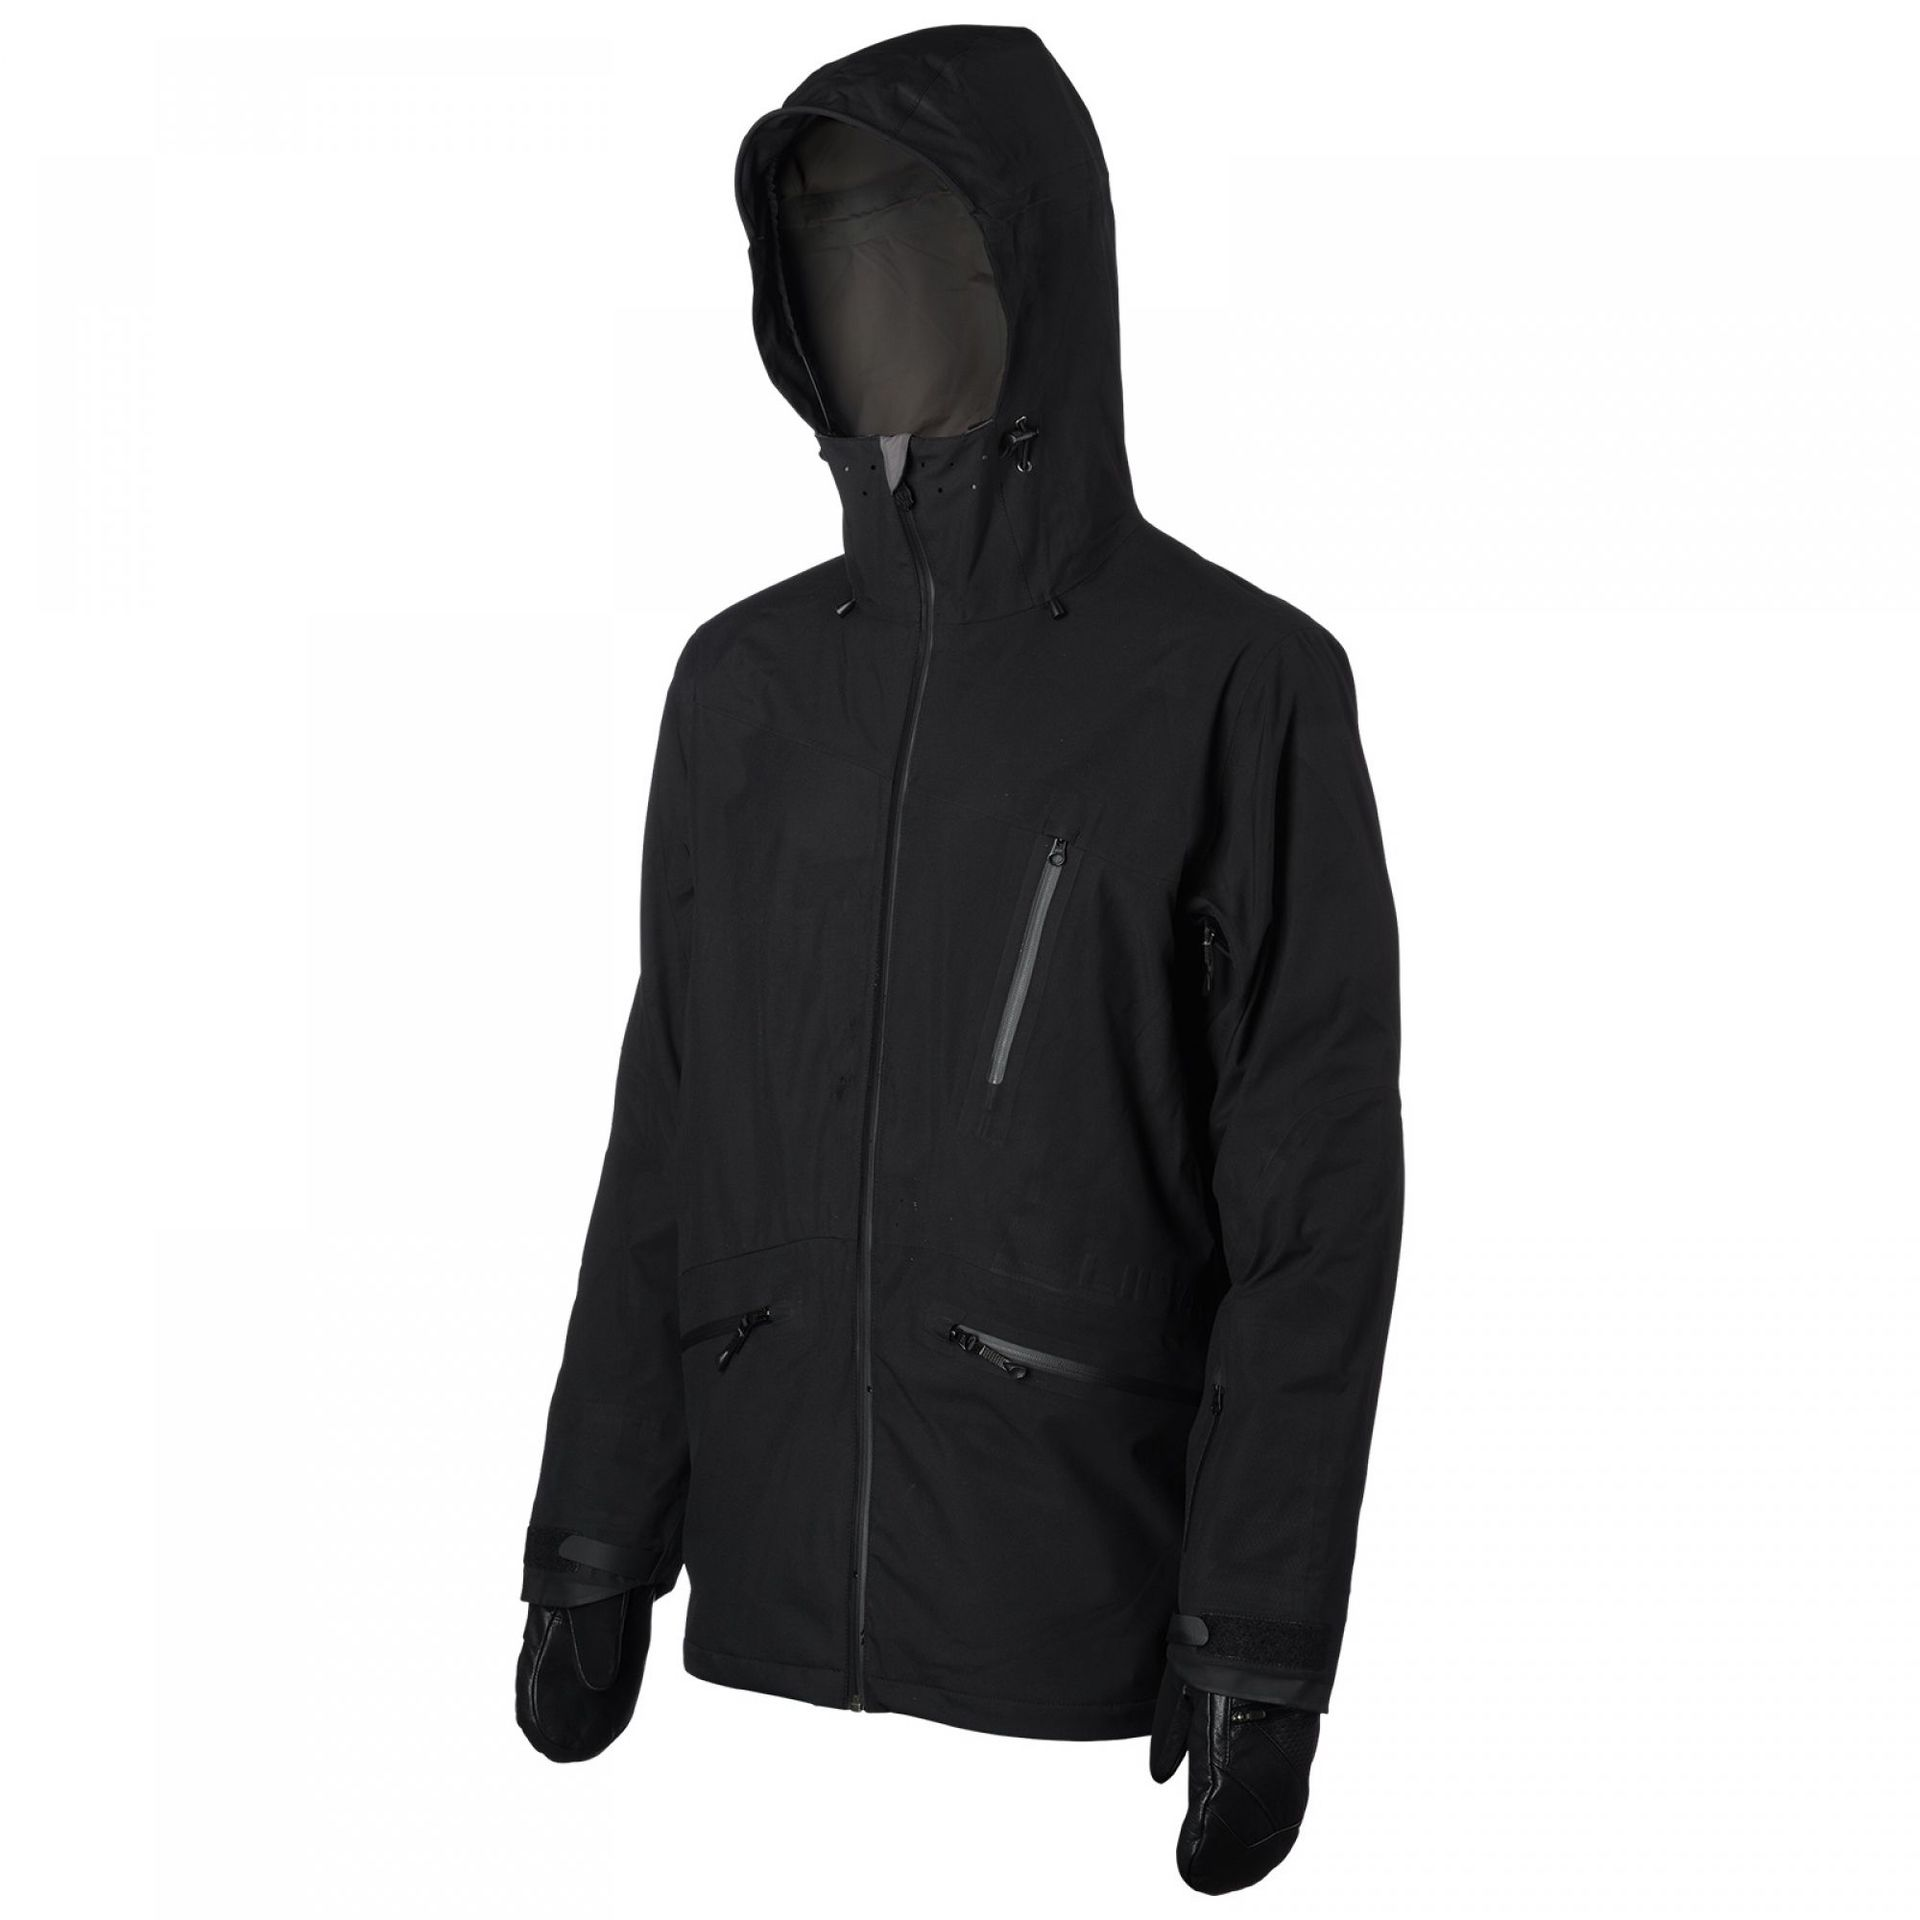 KURTKA LIB TECH STRAIT SCIENCE 3L JACKET BLACK